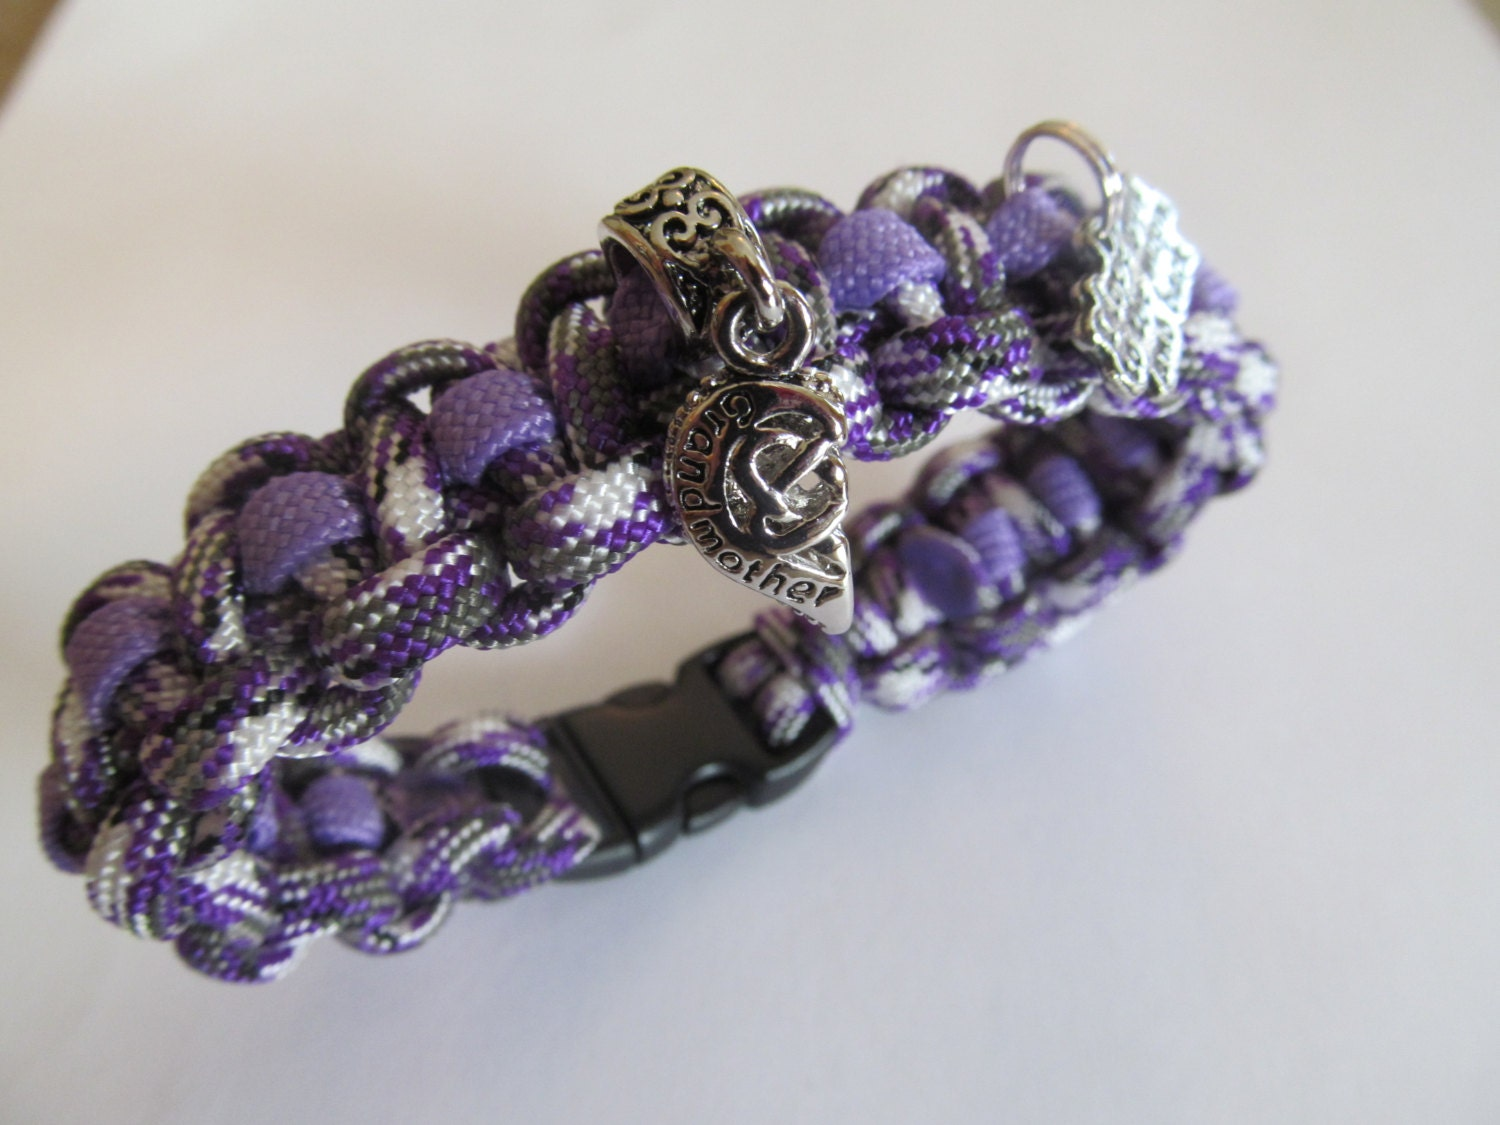 grandmother charm paracord bracelet handmade by doris2618